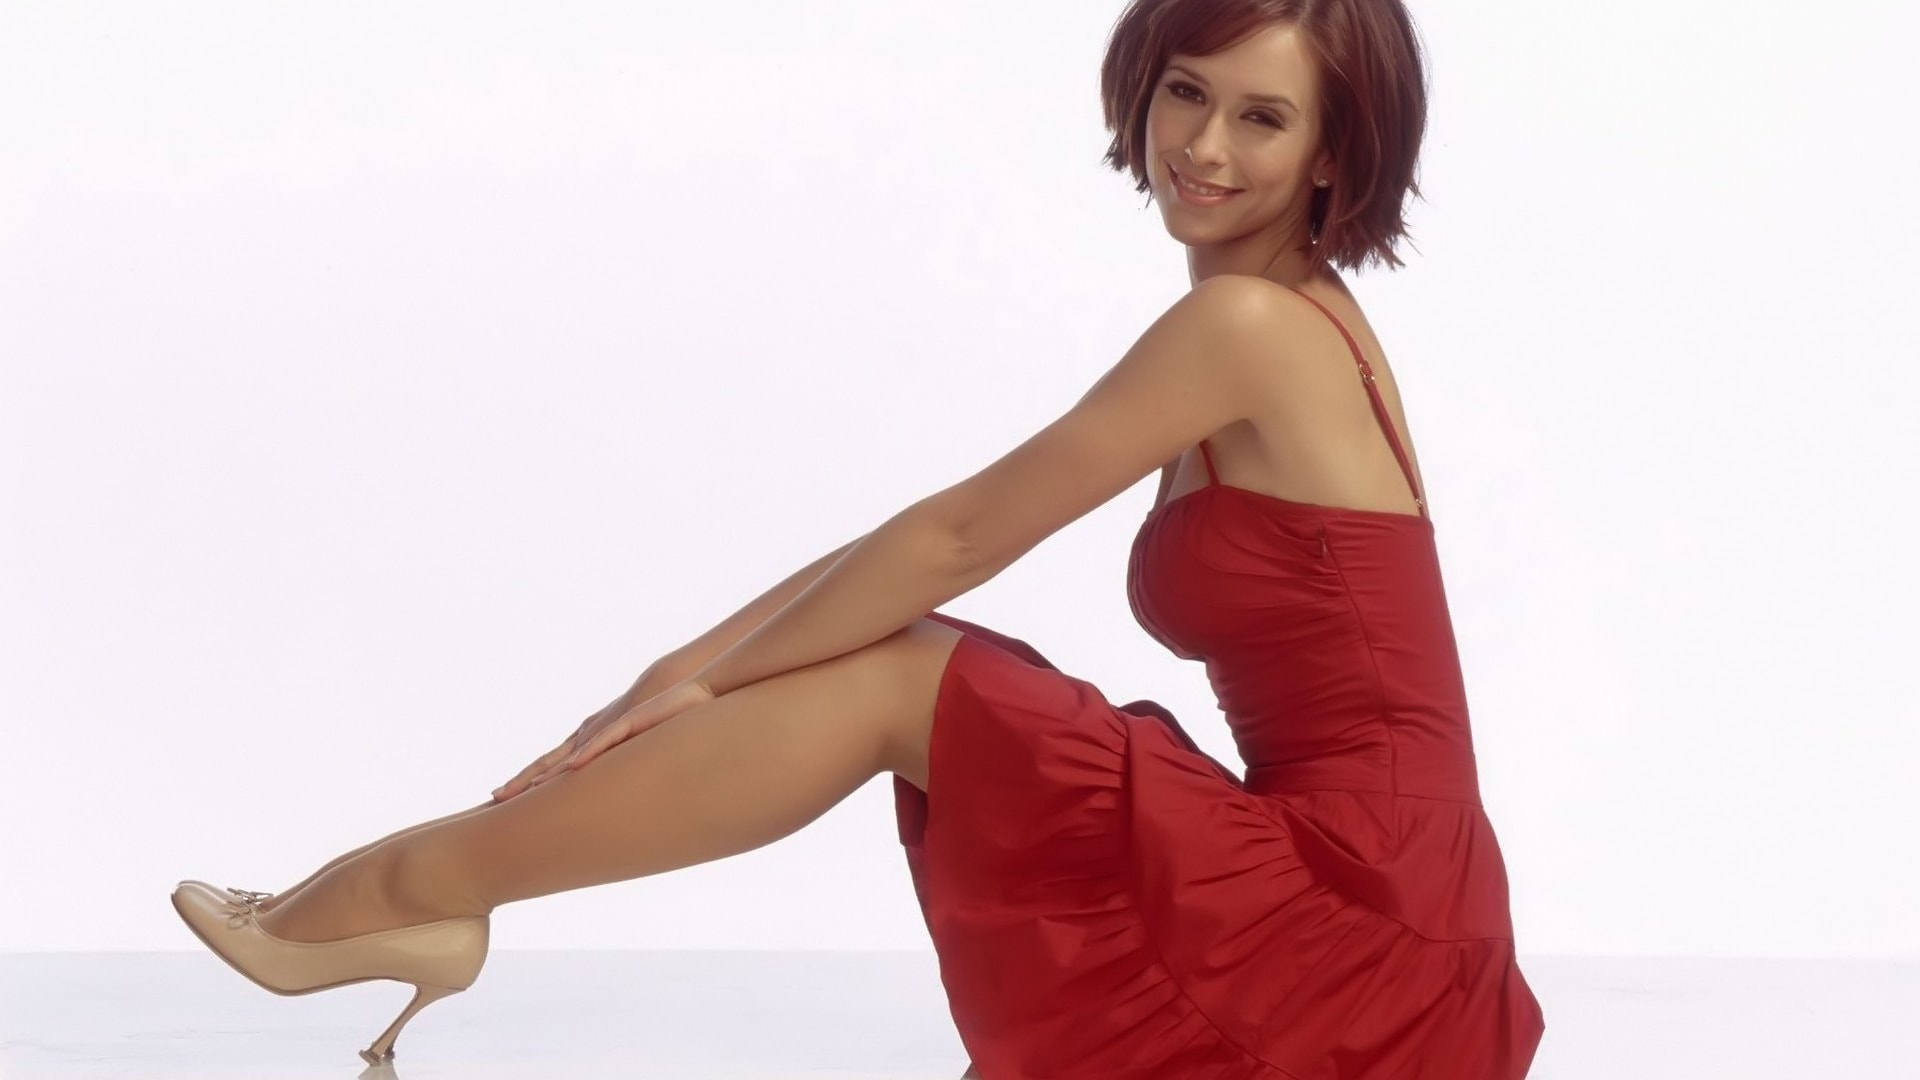 Jennifer Love Hewitt Desktop wallpapers